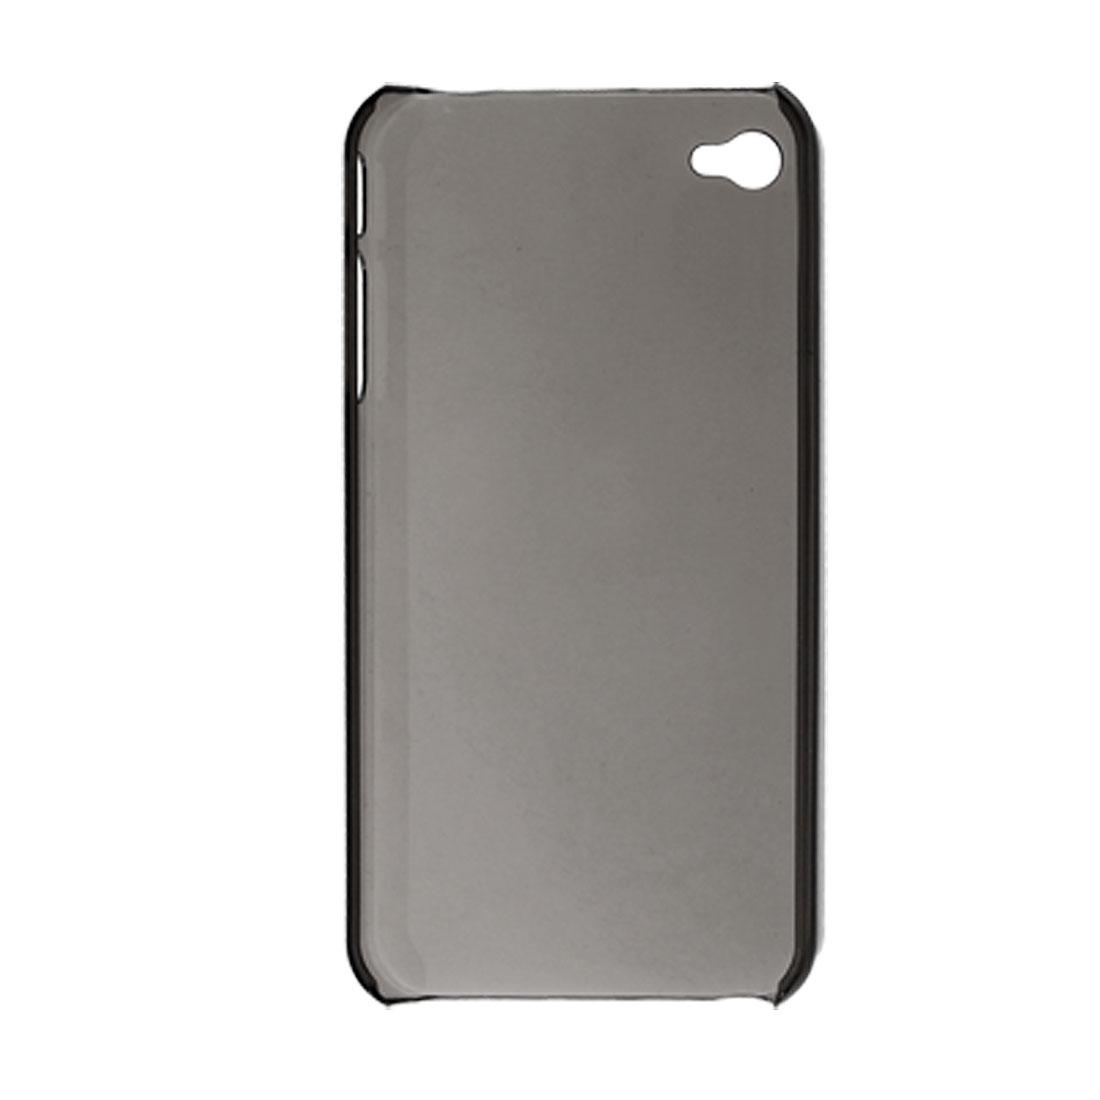 Clear Gray Plastic Protective Back Case for Apple iPhone 4 4G